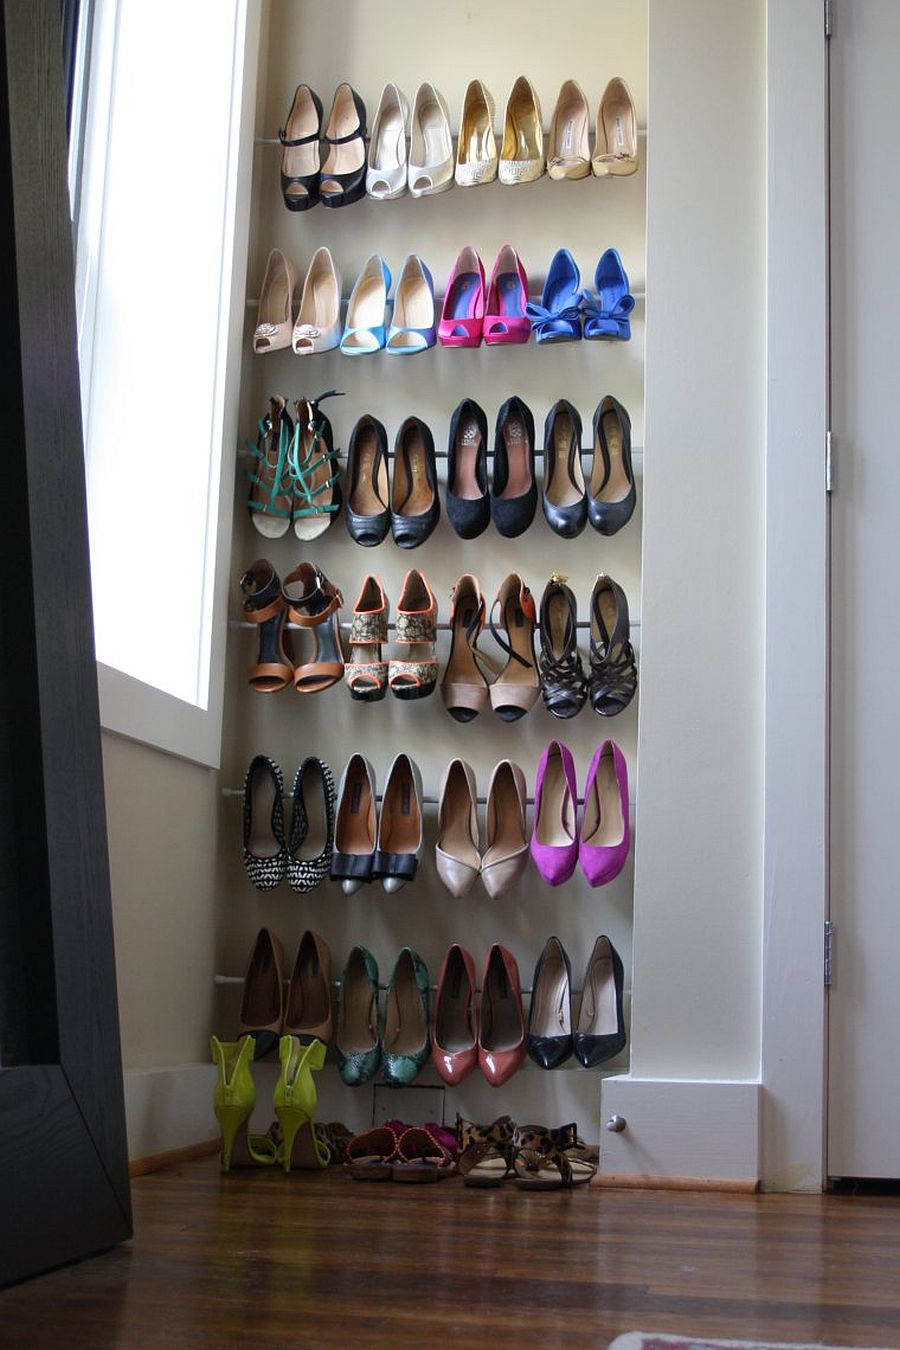 Space-saving shoe rack in the niche for the small urban apartment